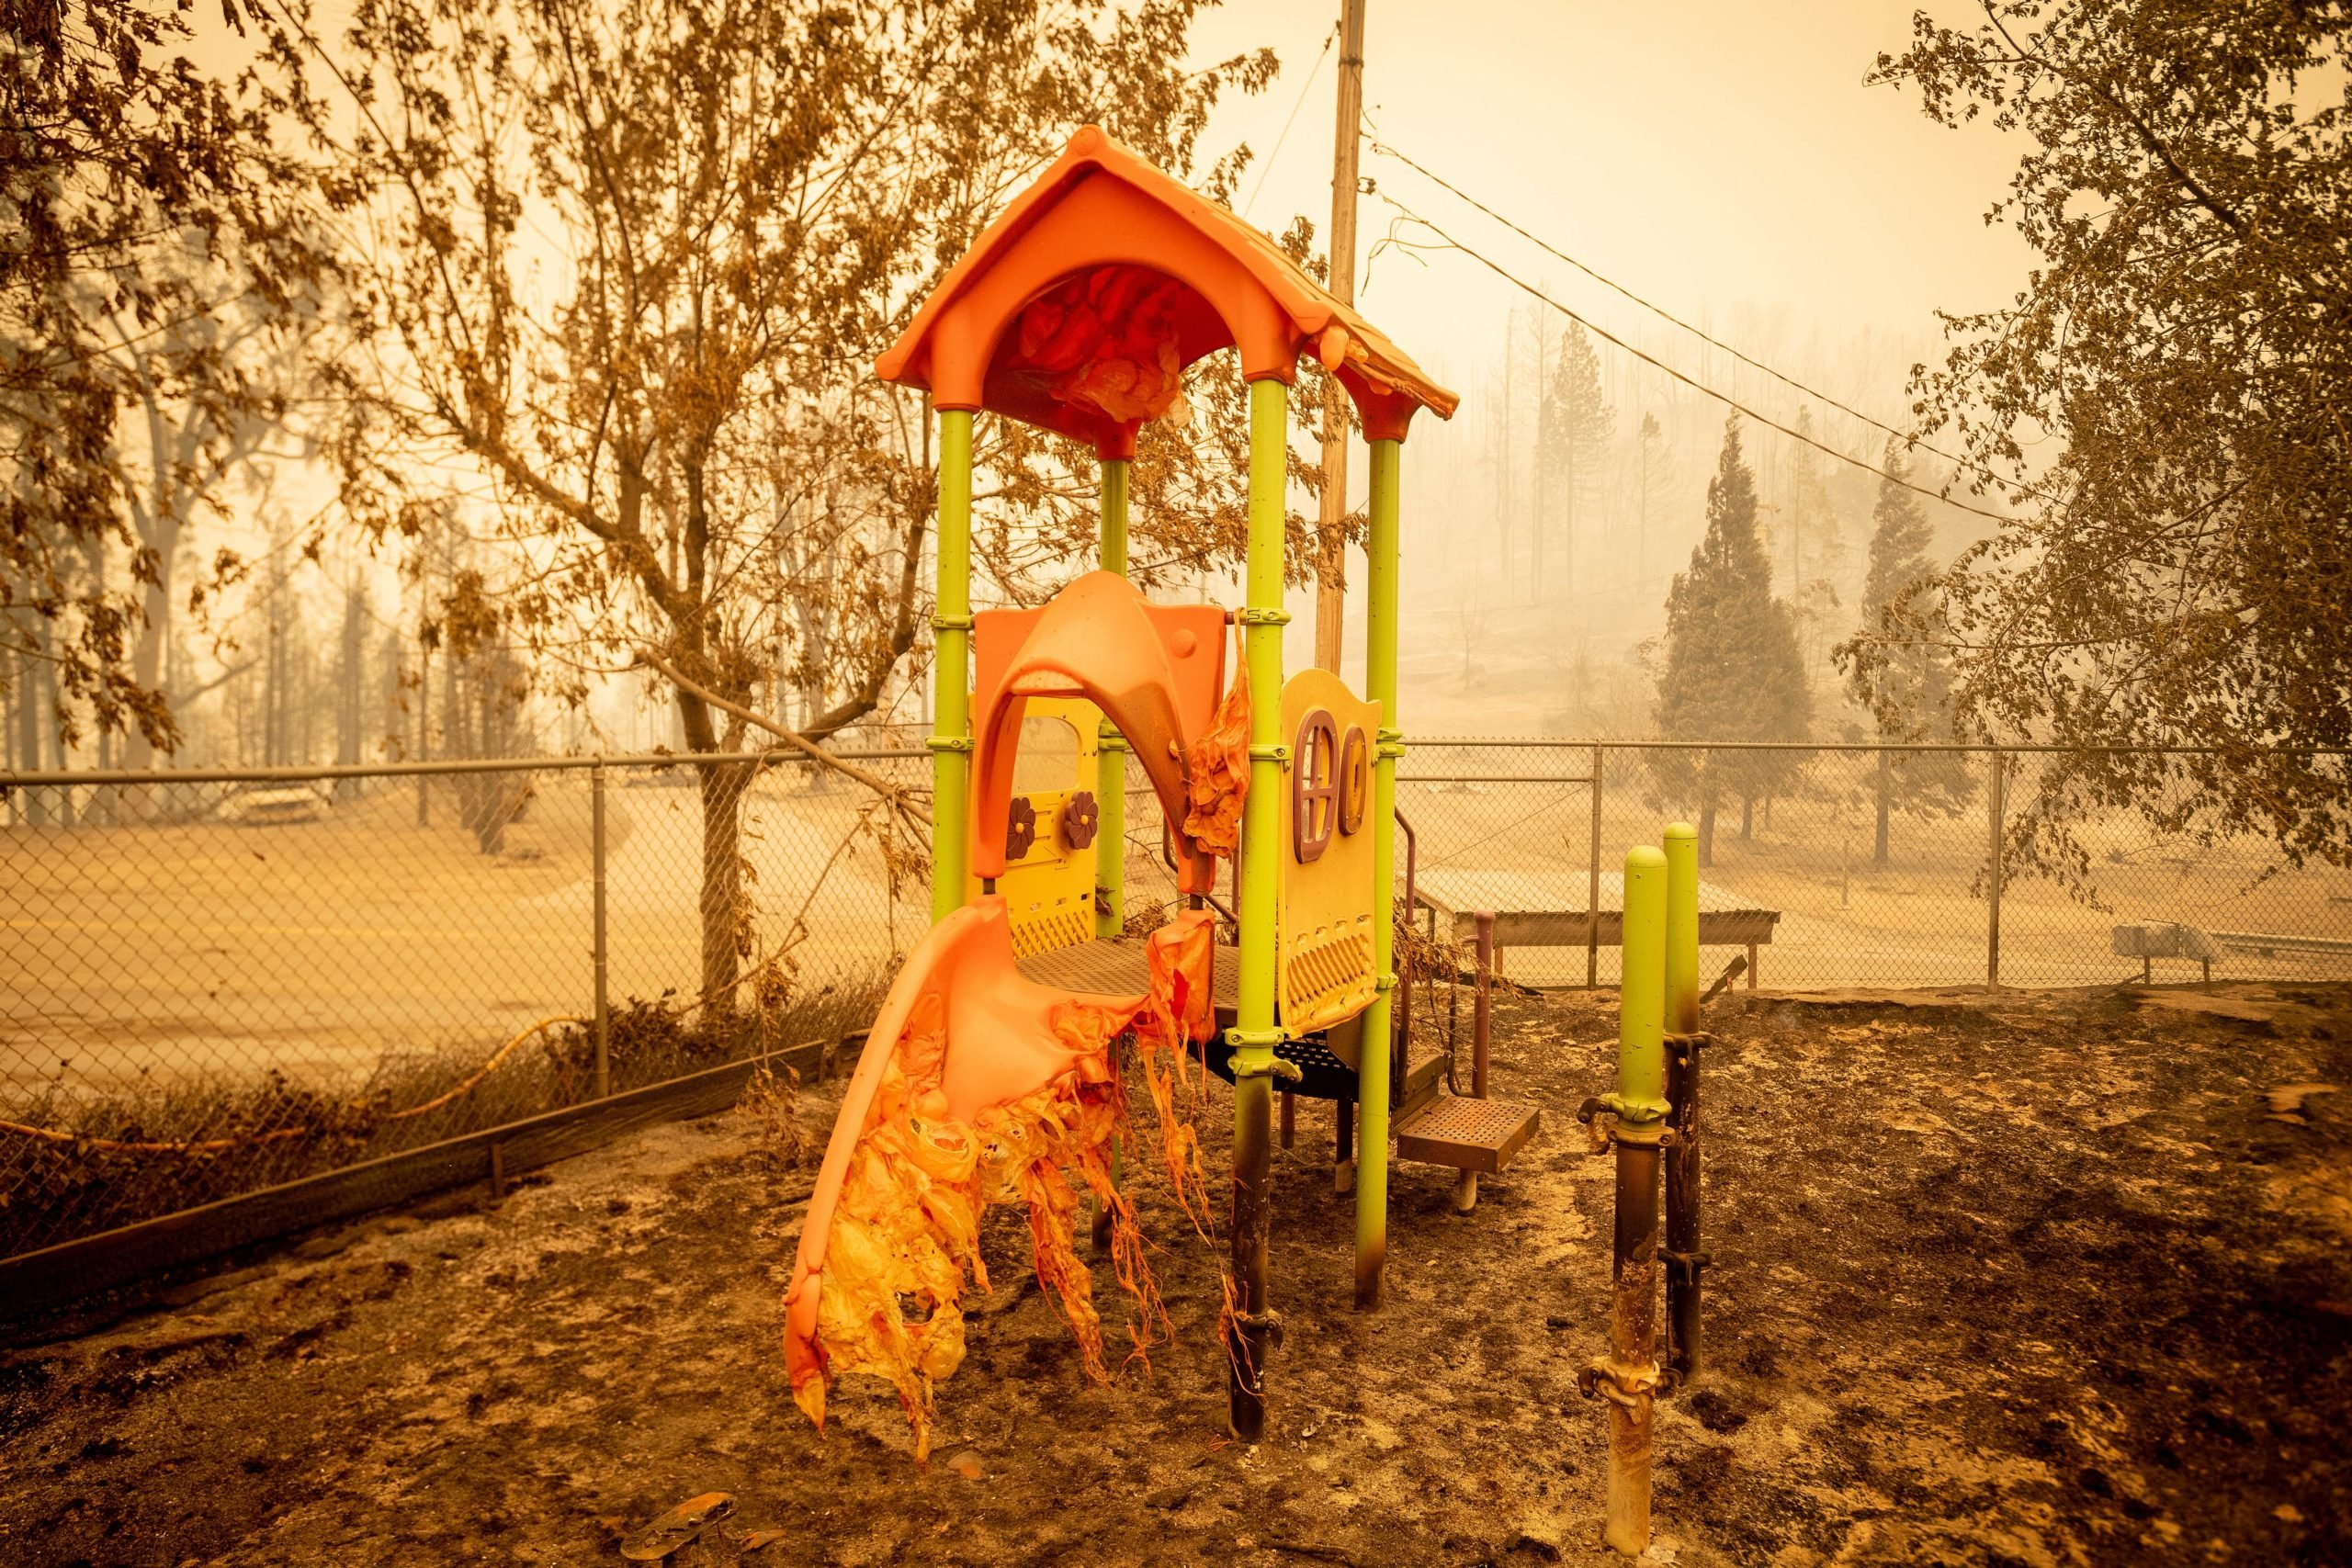 A melted slide smolders as a playground continues to burn at Pine Ridge school during the Creek fire in an unincorporated area of Fresno County, California on September 08, 2020. - Wildfires in California have torched a record more than two million acres, the state fire department said on September 7, as smoke hampered efforts to airlift dozens of people trapped by an uncontrolled blaze. (Photo by JOSH EDELSON/AFP via Getty Images)